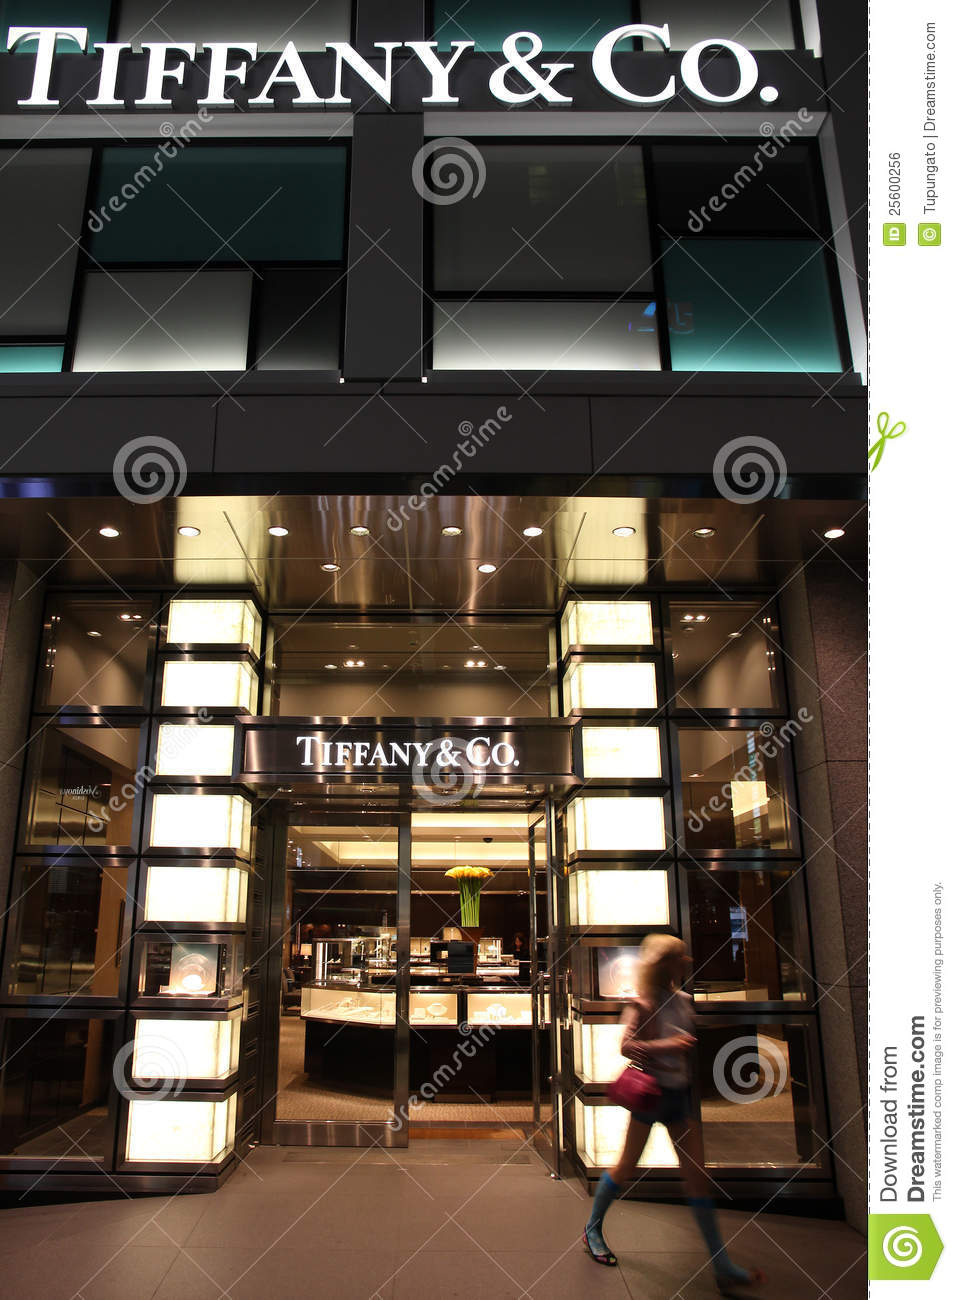 2b3b26bc9 TOKYO - MAY 8: Shopper walks out of Tiffany & Co store May 8, 2012 in Ginza  district, Tokyo. According to Millward Brown Tiffany & Co is among top 10  most ...